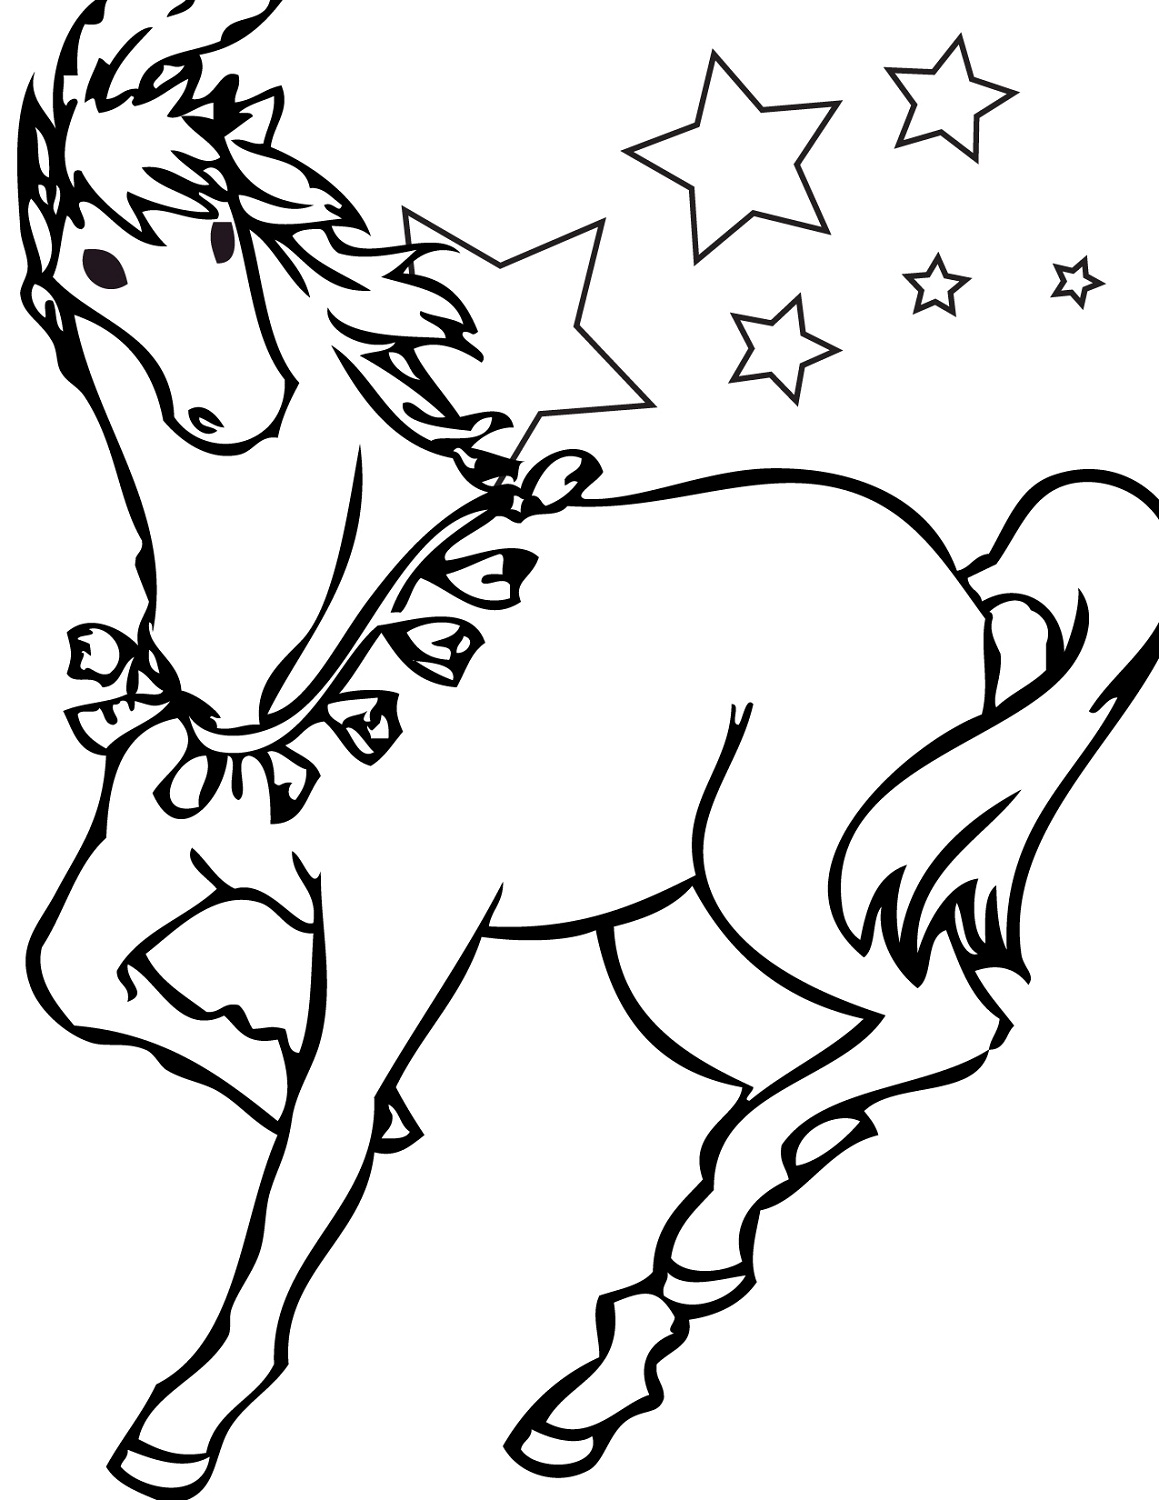 horse coloring image 30 best horse coloring pages ideas weneedfun image coloring horse